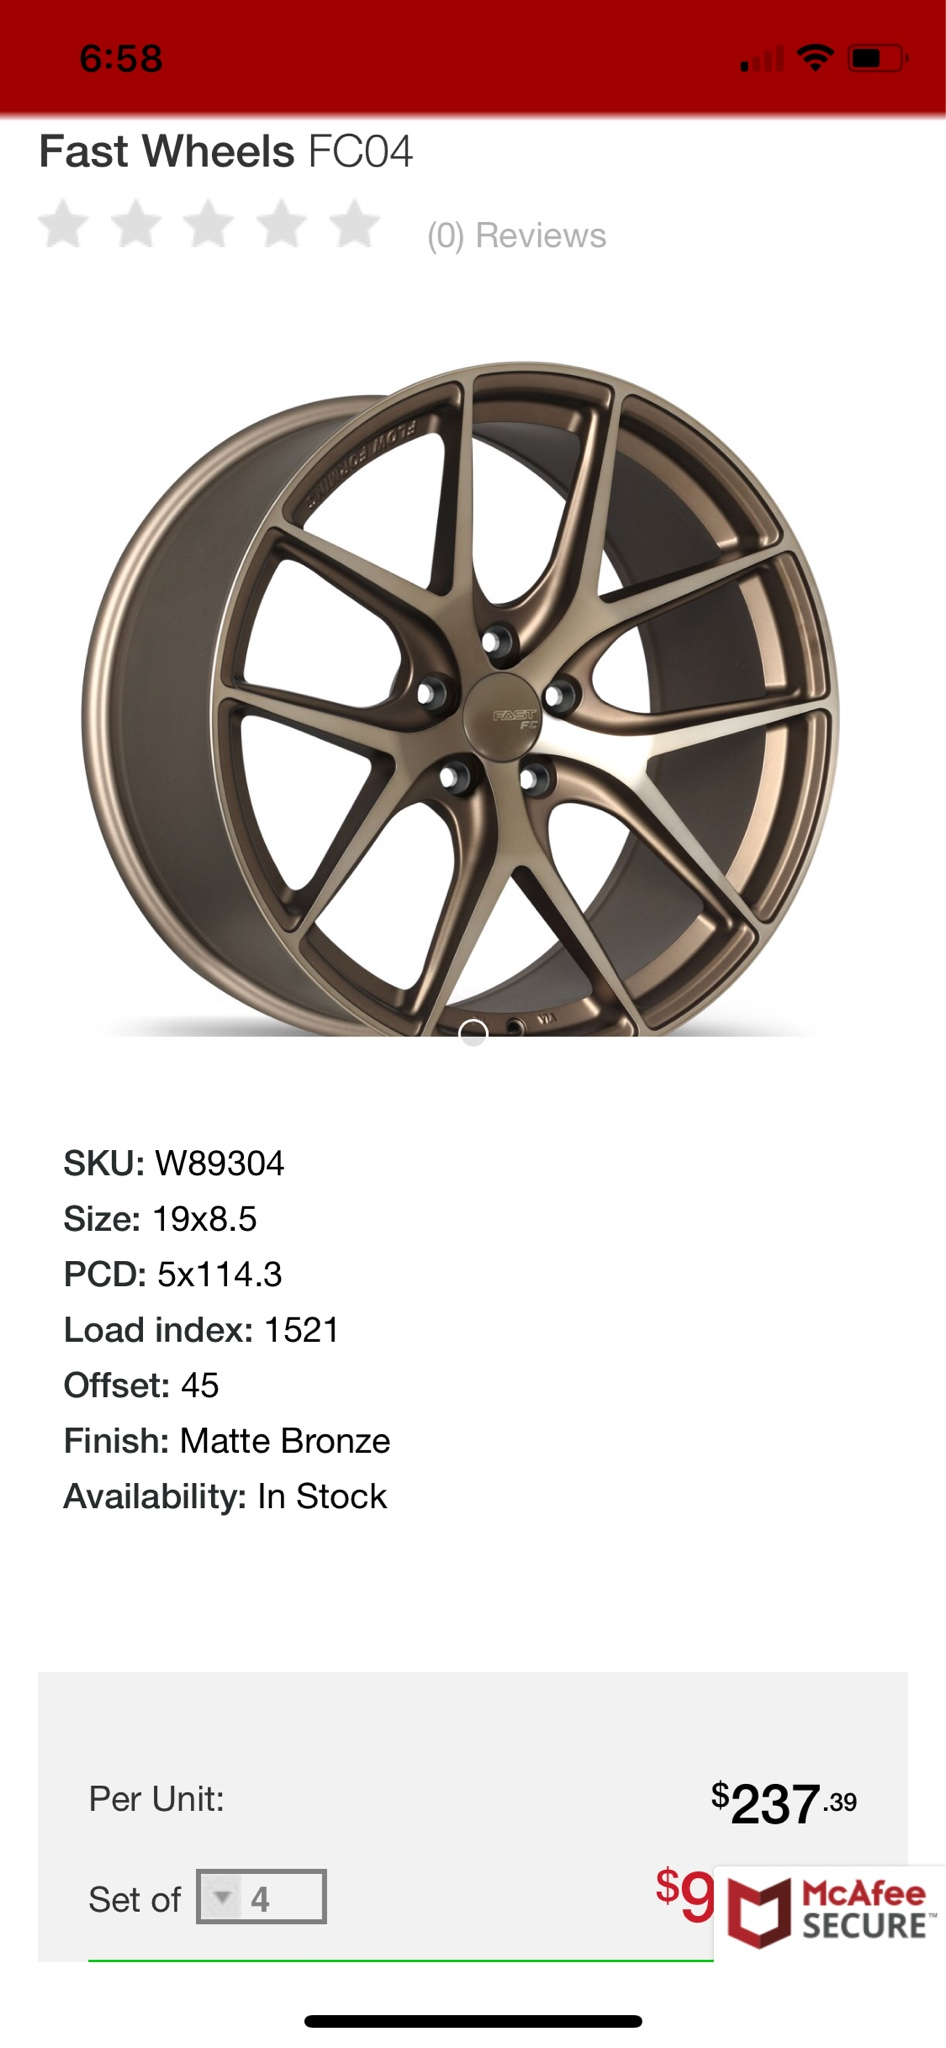 Show Me Your Wheels Page Drive Accord Honda Forums - Show me rims on my car